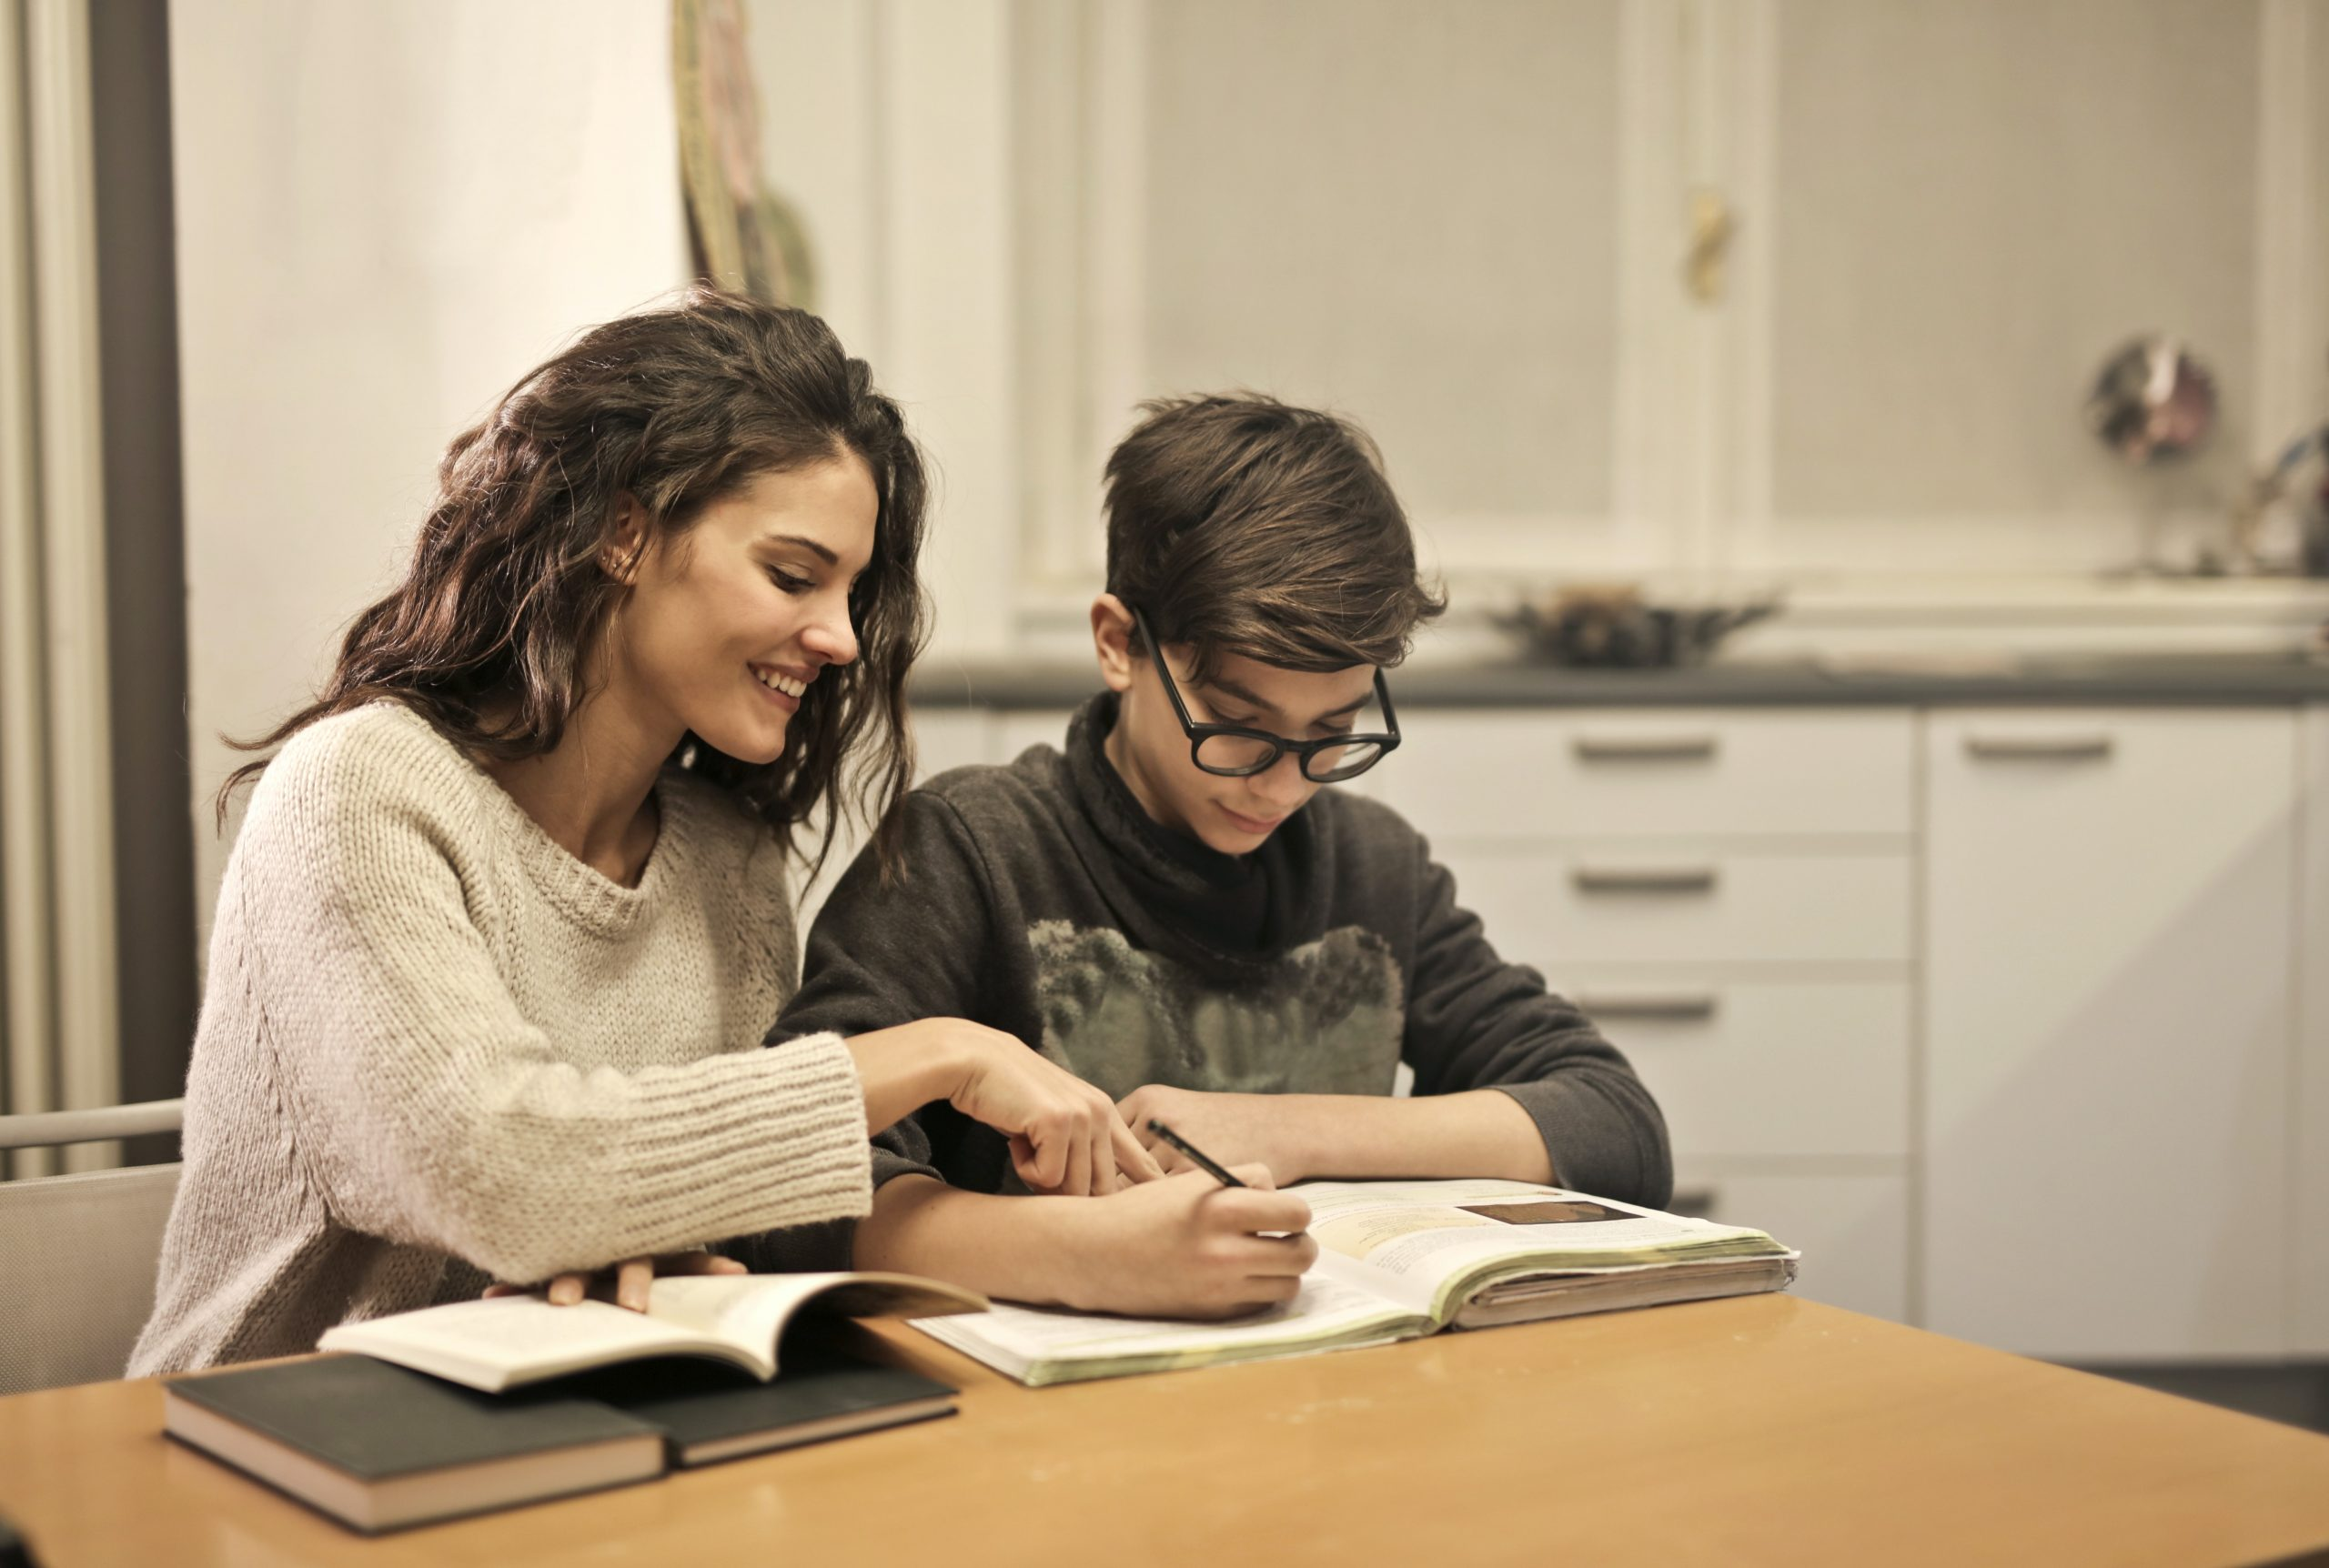 How To Create A Book For Brother In Different Ways